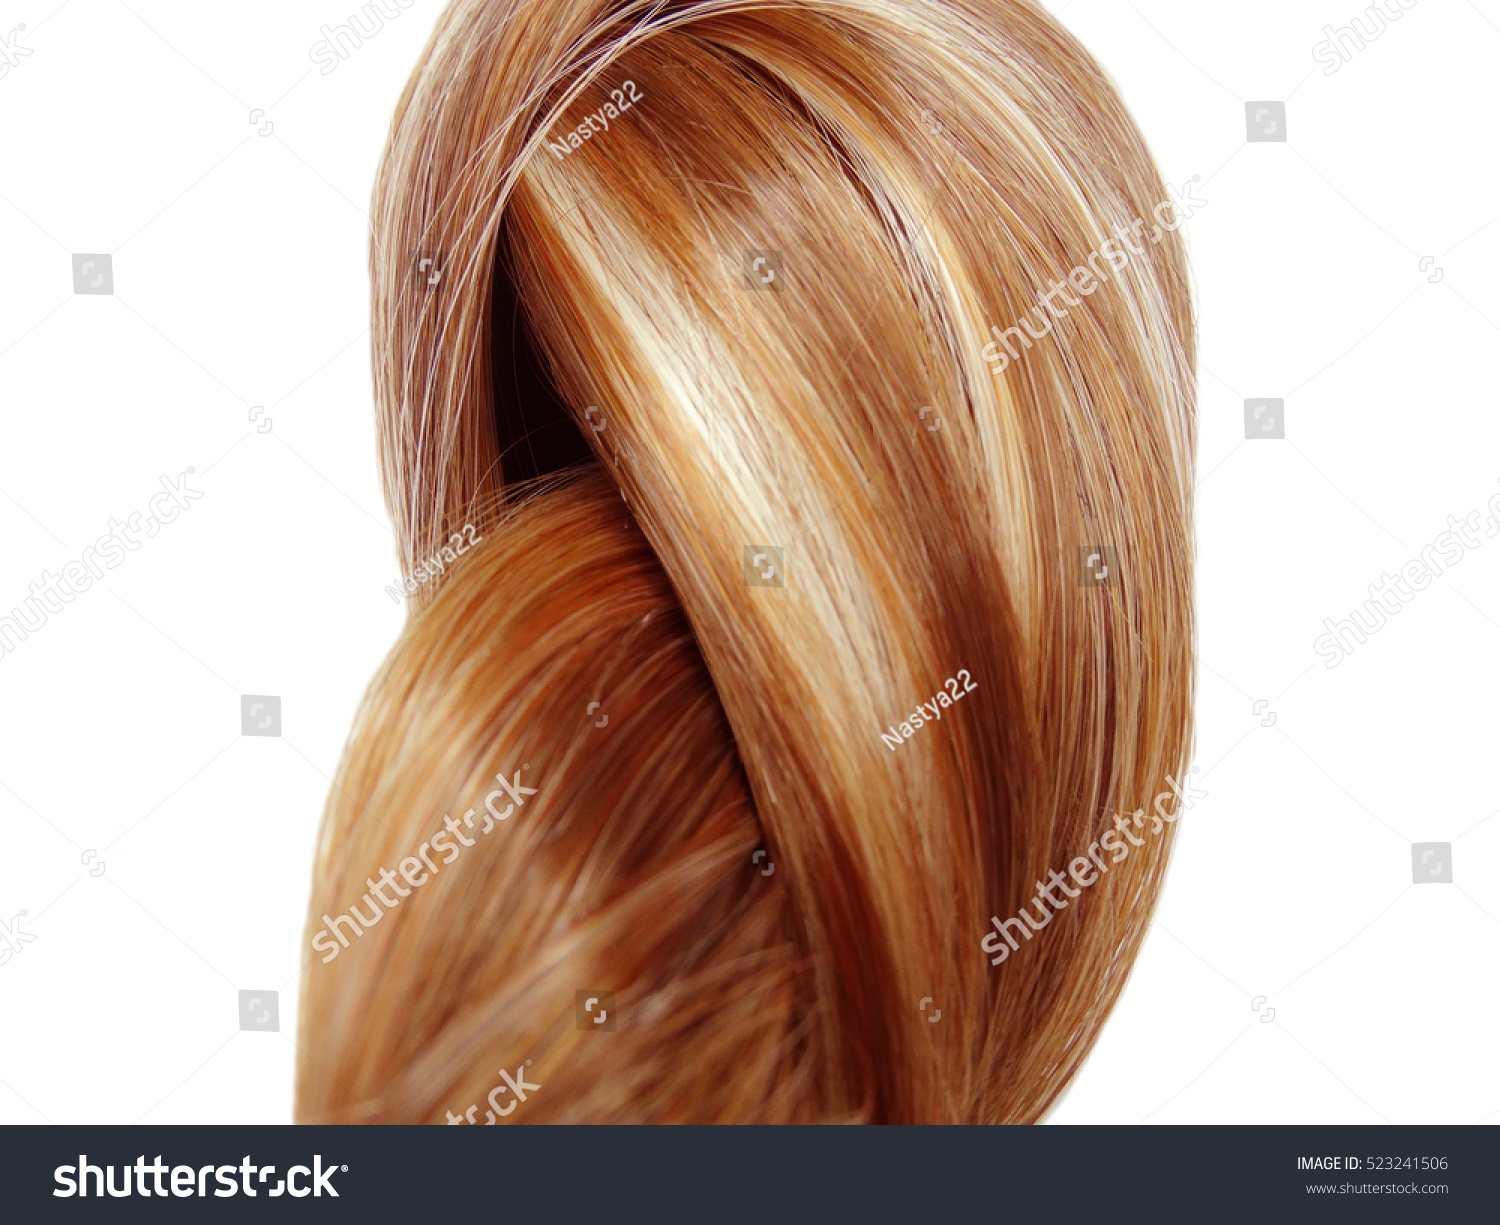 Highlight Hair Texture Abstract Fashion Background Stock Photo Safe